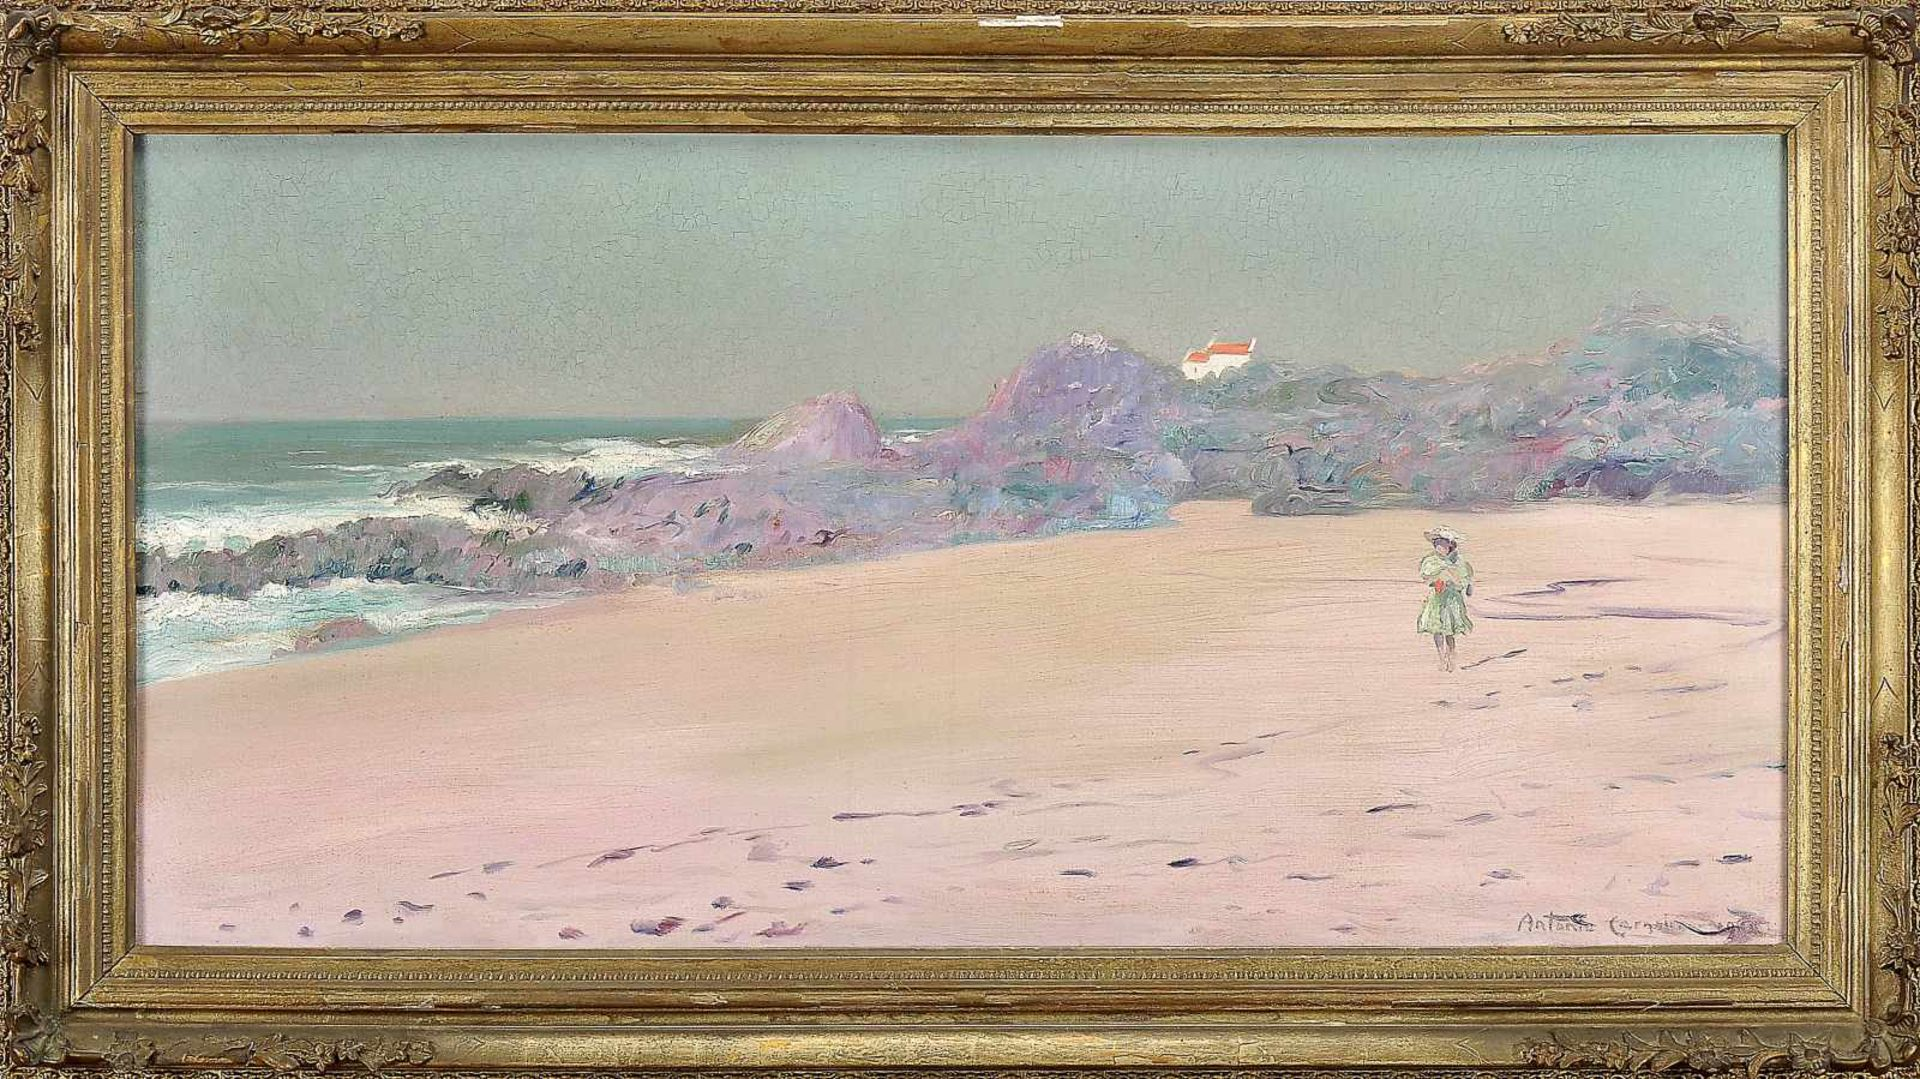 Los 88 - Beach view with figureANTÓNIO CARNEIRO - 1872-1930, Beach view with figure, oil on canvas, signed...